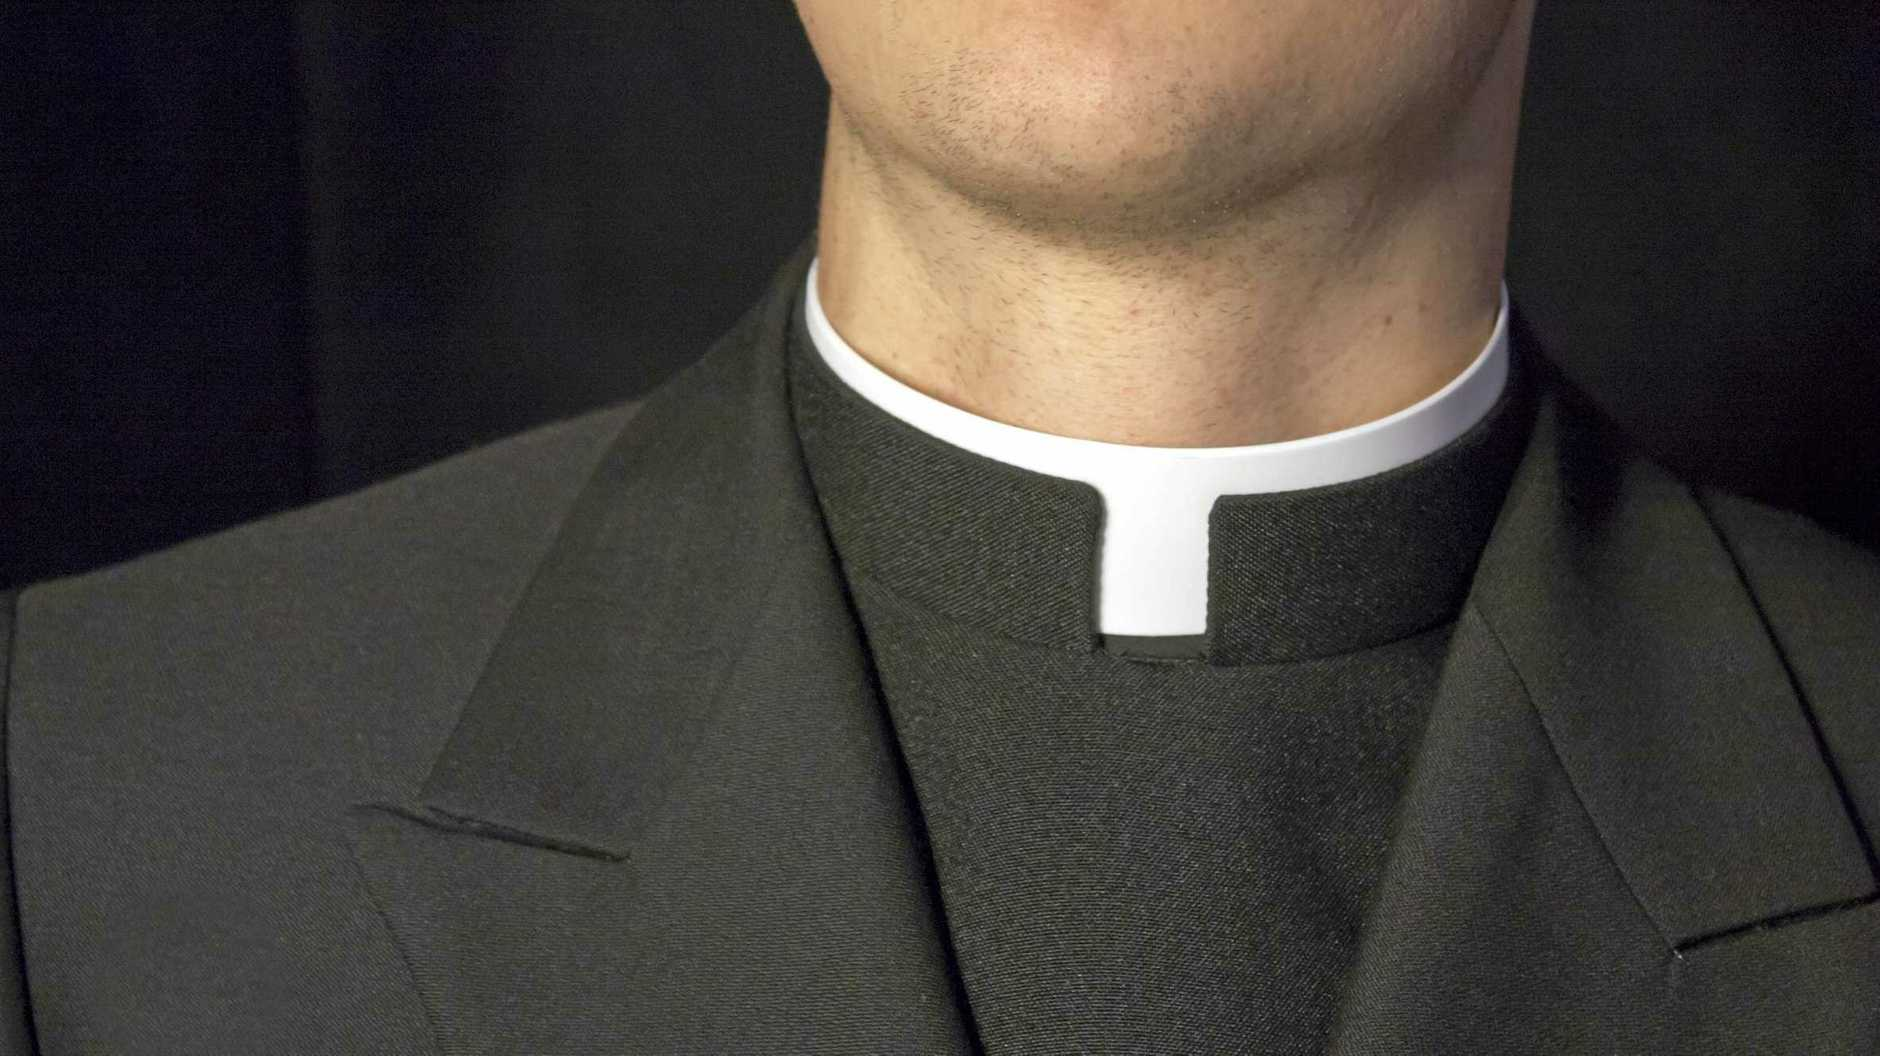 A former priest is facing charges of buggery.